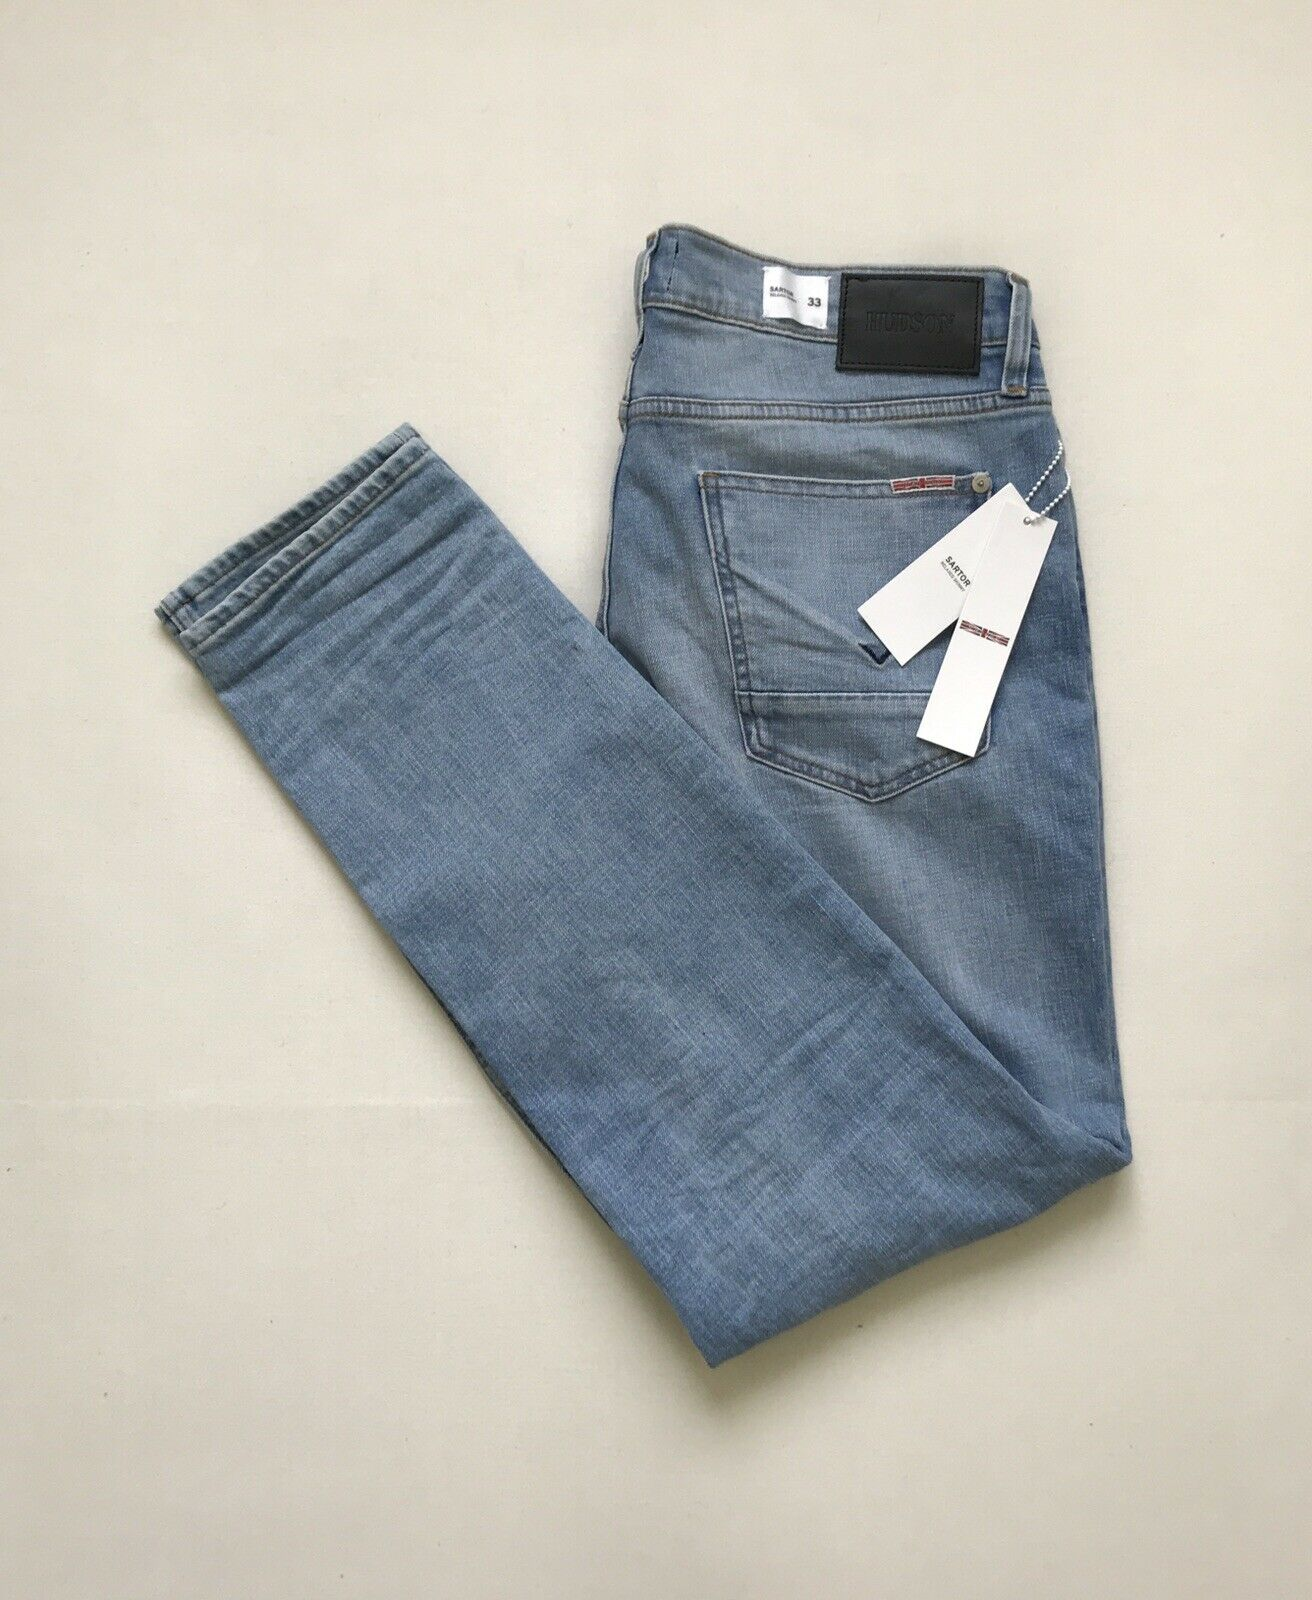 NWT Size 33X32 Men's HUDSON SARTOR Relaxed Skinny Stretch Distressed Denim Jeans